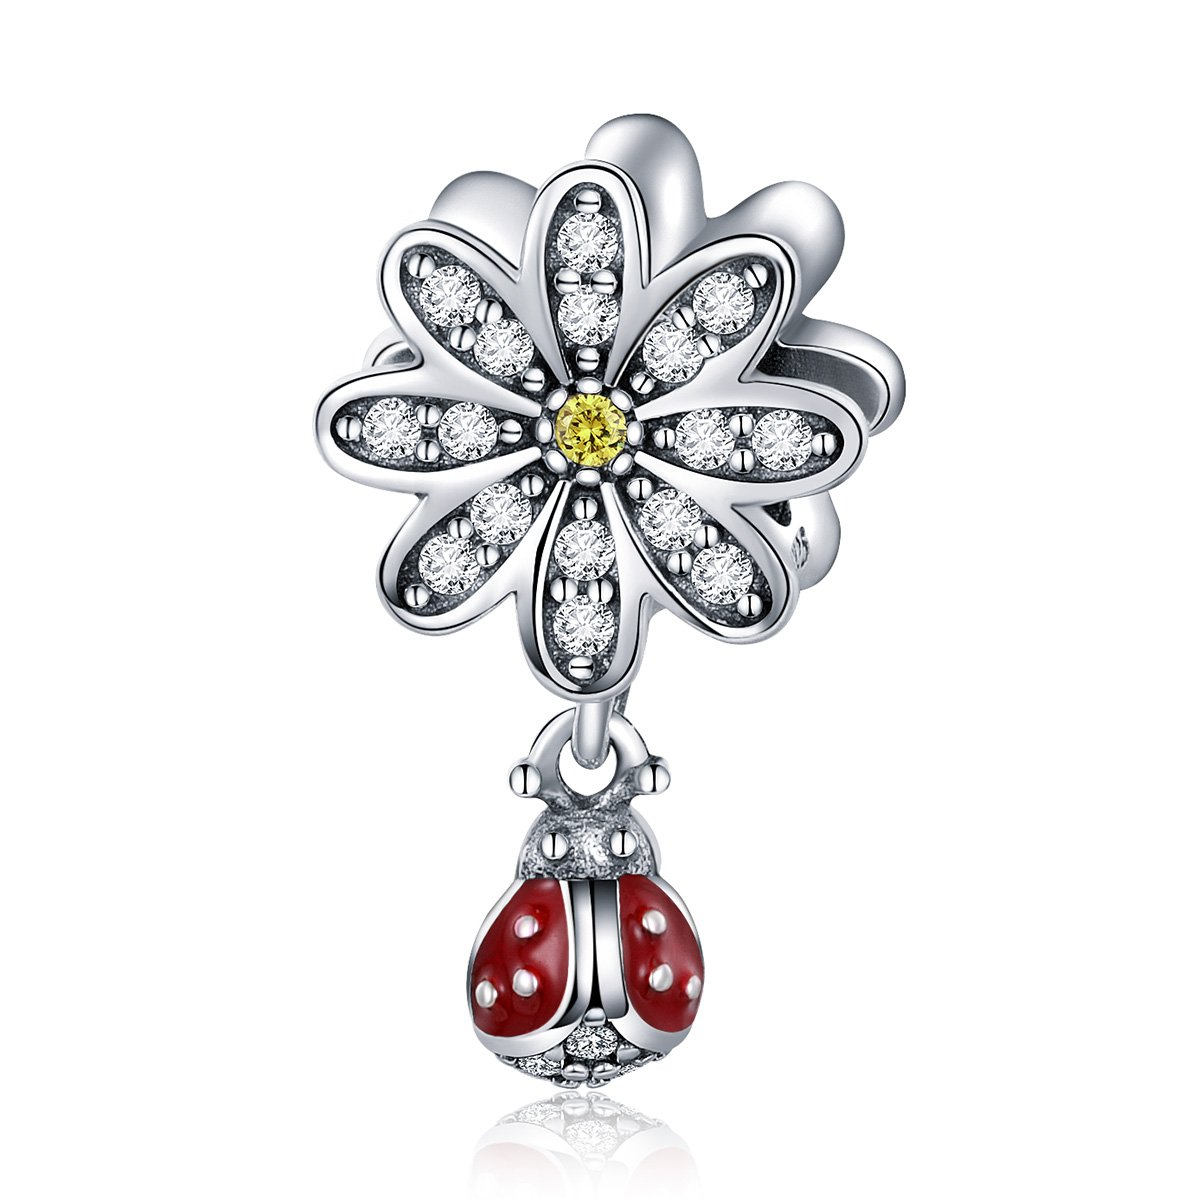 WOSTU Animal Charms Flower Charms for Charm Bracelets 925 Sterling Silver Charms Beads Gifts for Her